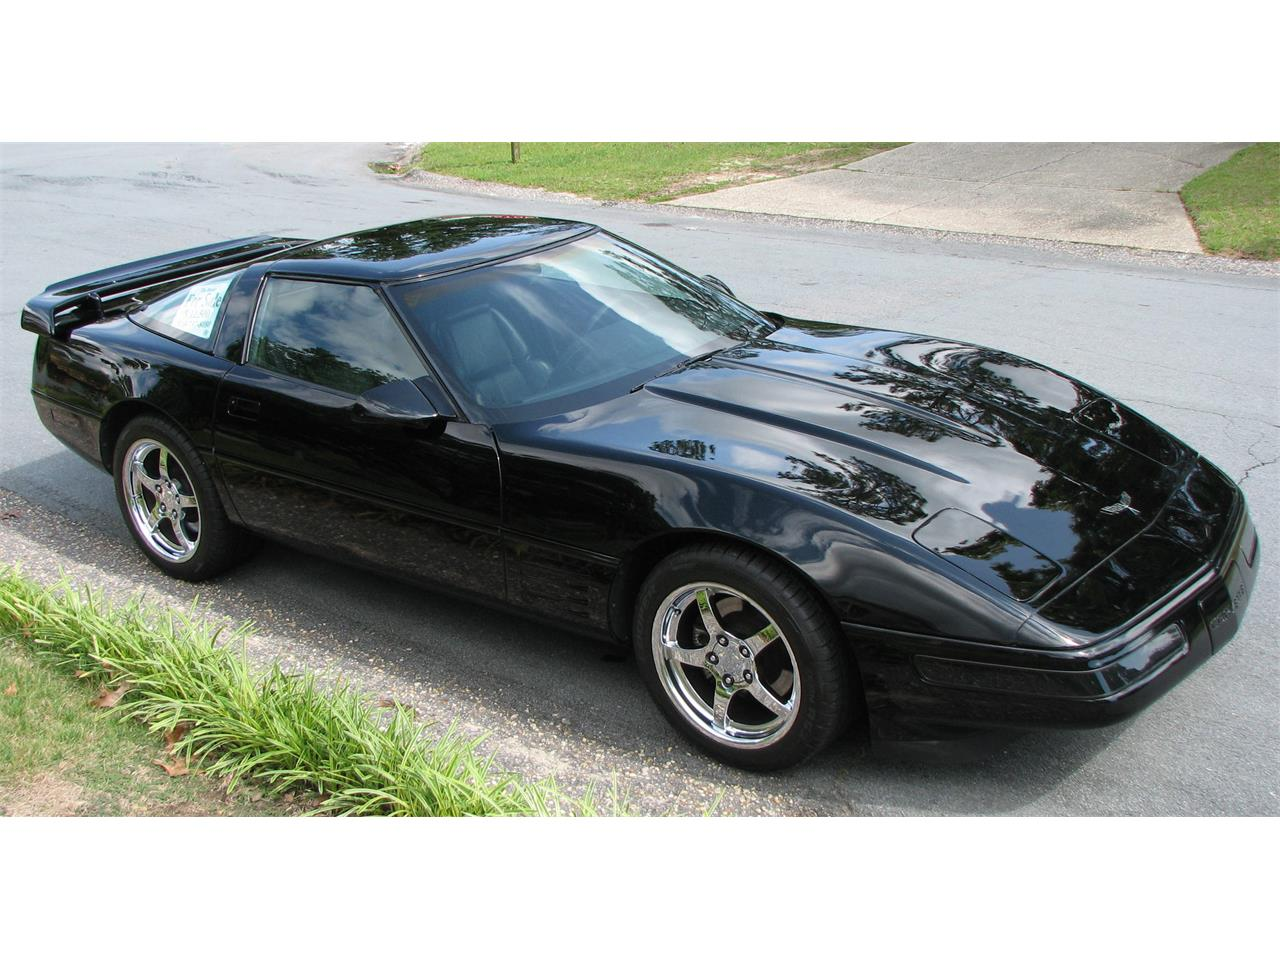 Large Picture of 1991 Chevrolet Corvette located in North Carolina - $10,750.00 - L16X